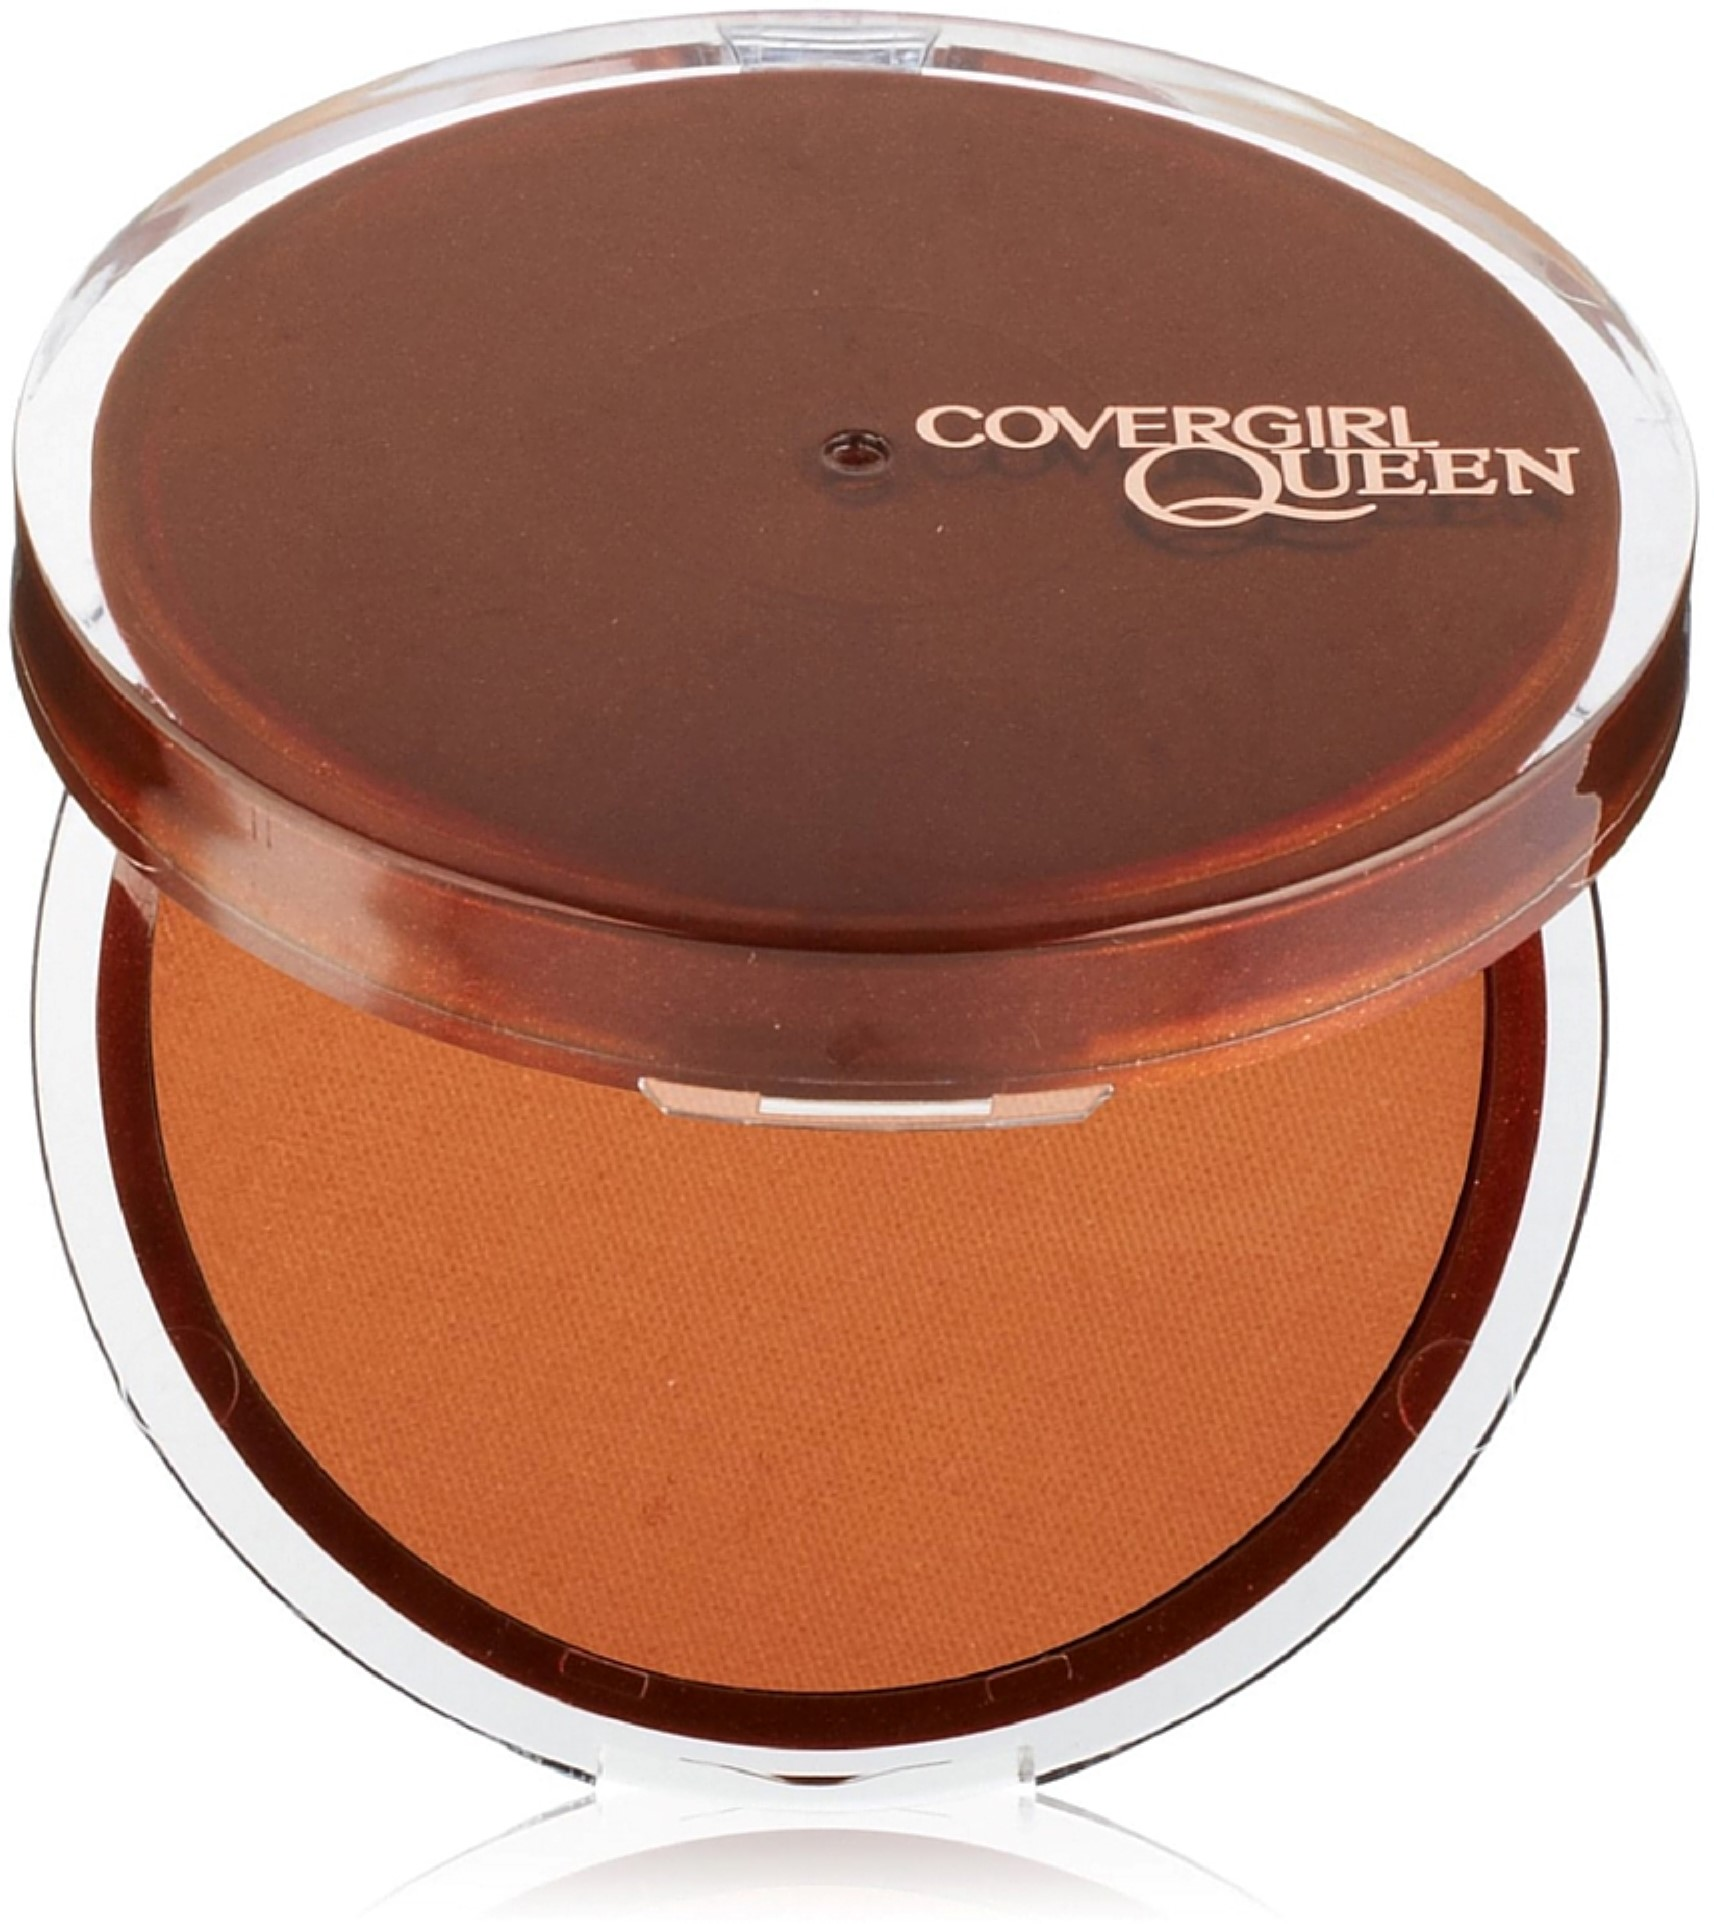 CoverGirl Queen Collection Lasting Matte Pressed Powder, Medium Deep [Q425] 0.37 oz (Pack of 2)